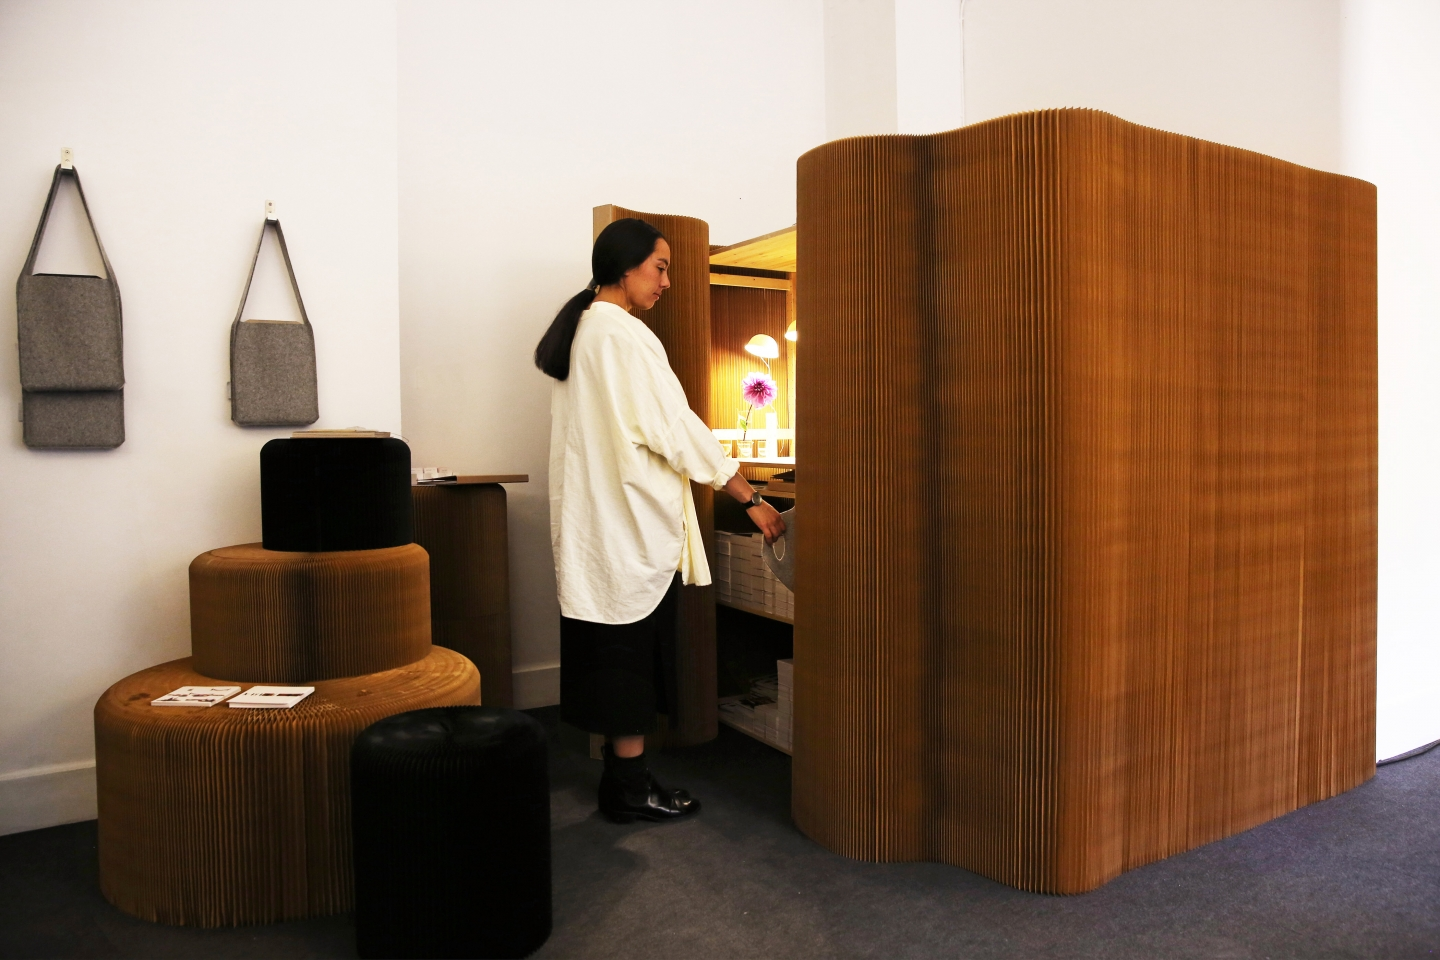 thinwall closet at Design Junction 2015 - paper wall partition, paper seating by molo